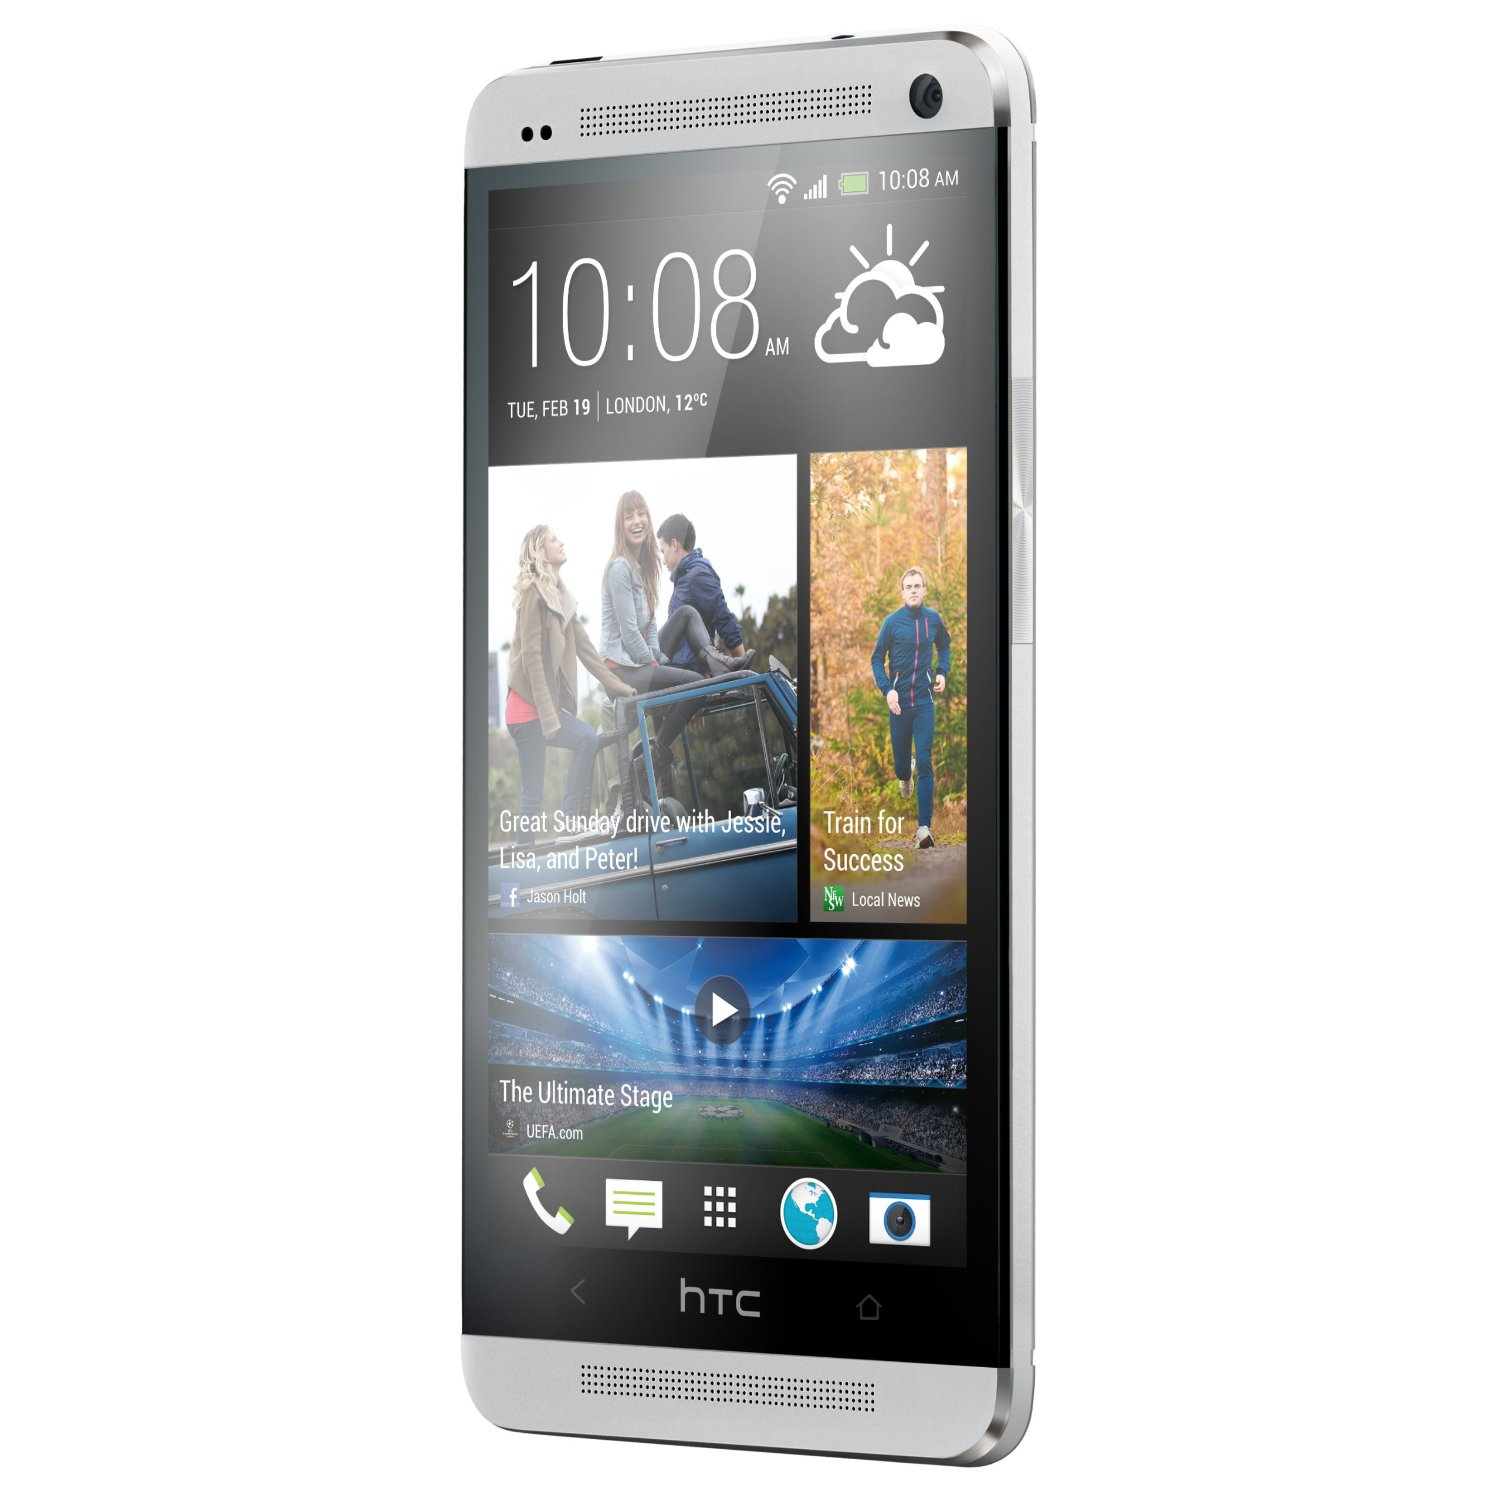 HTC One Smart phone